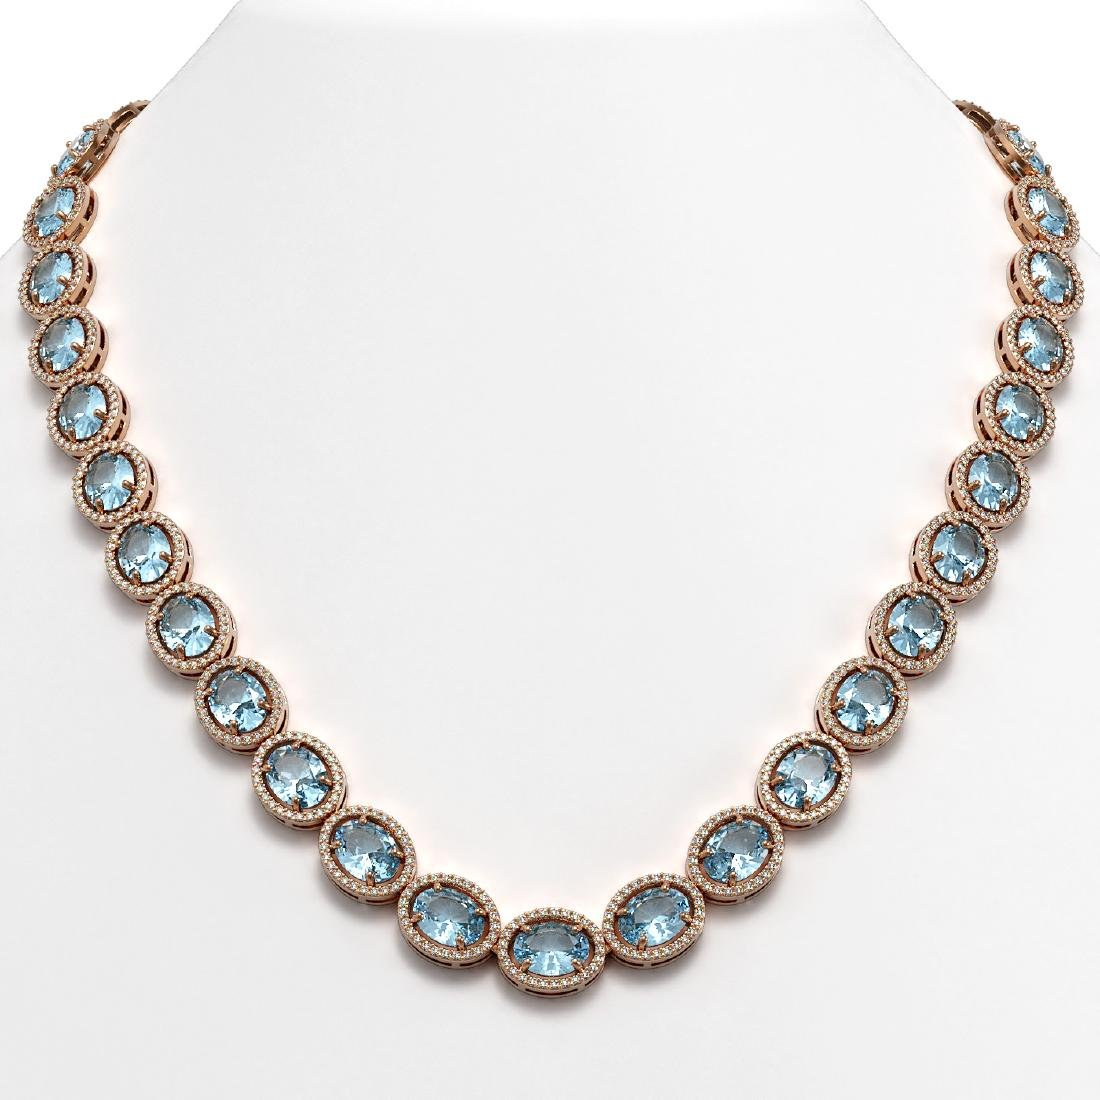 54.11 CTW Aquamarine & Diamond Halo Necklace 10K Rose